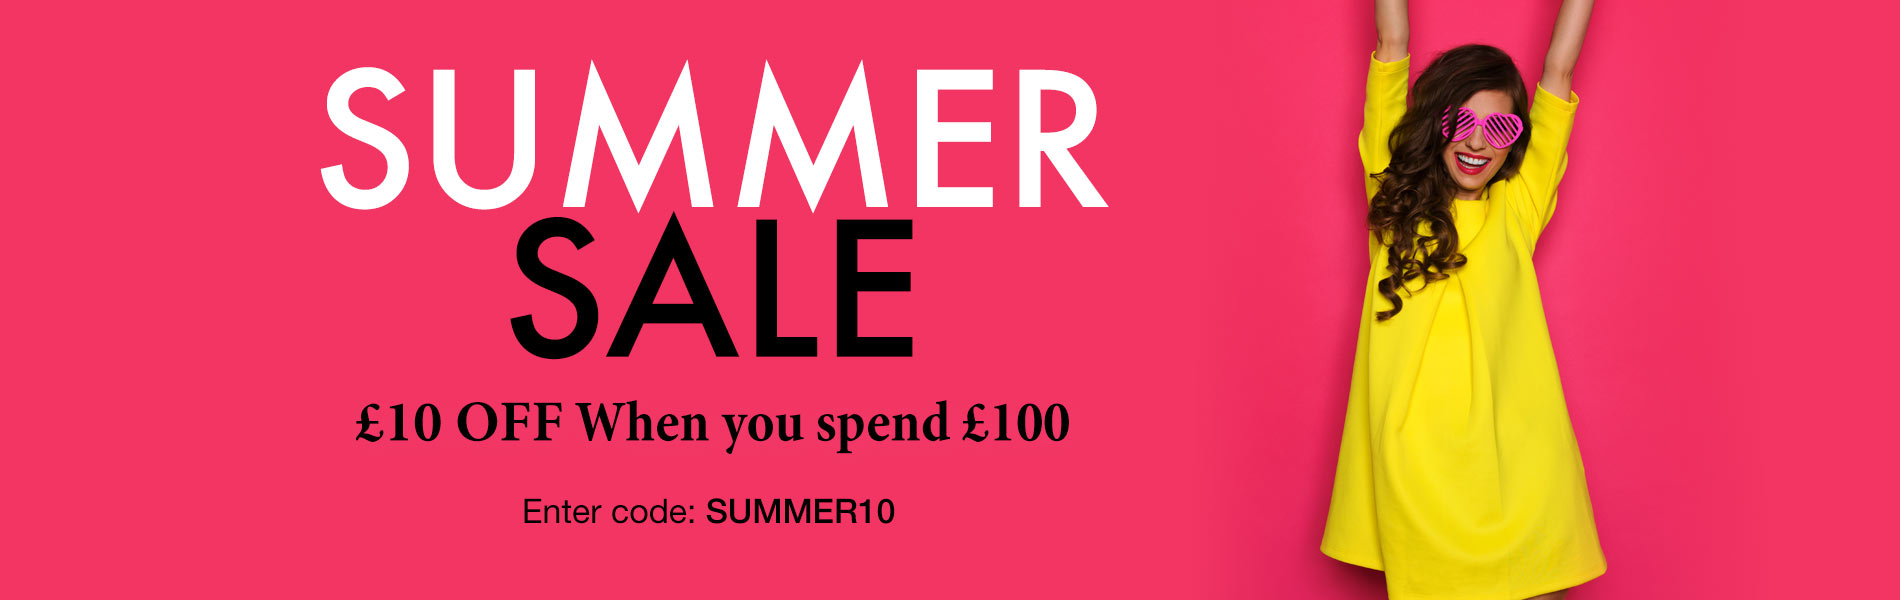 £10 off £100 spend